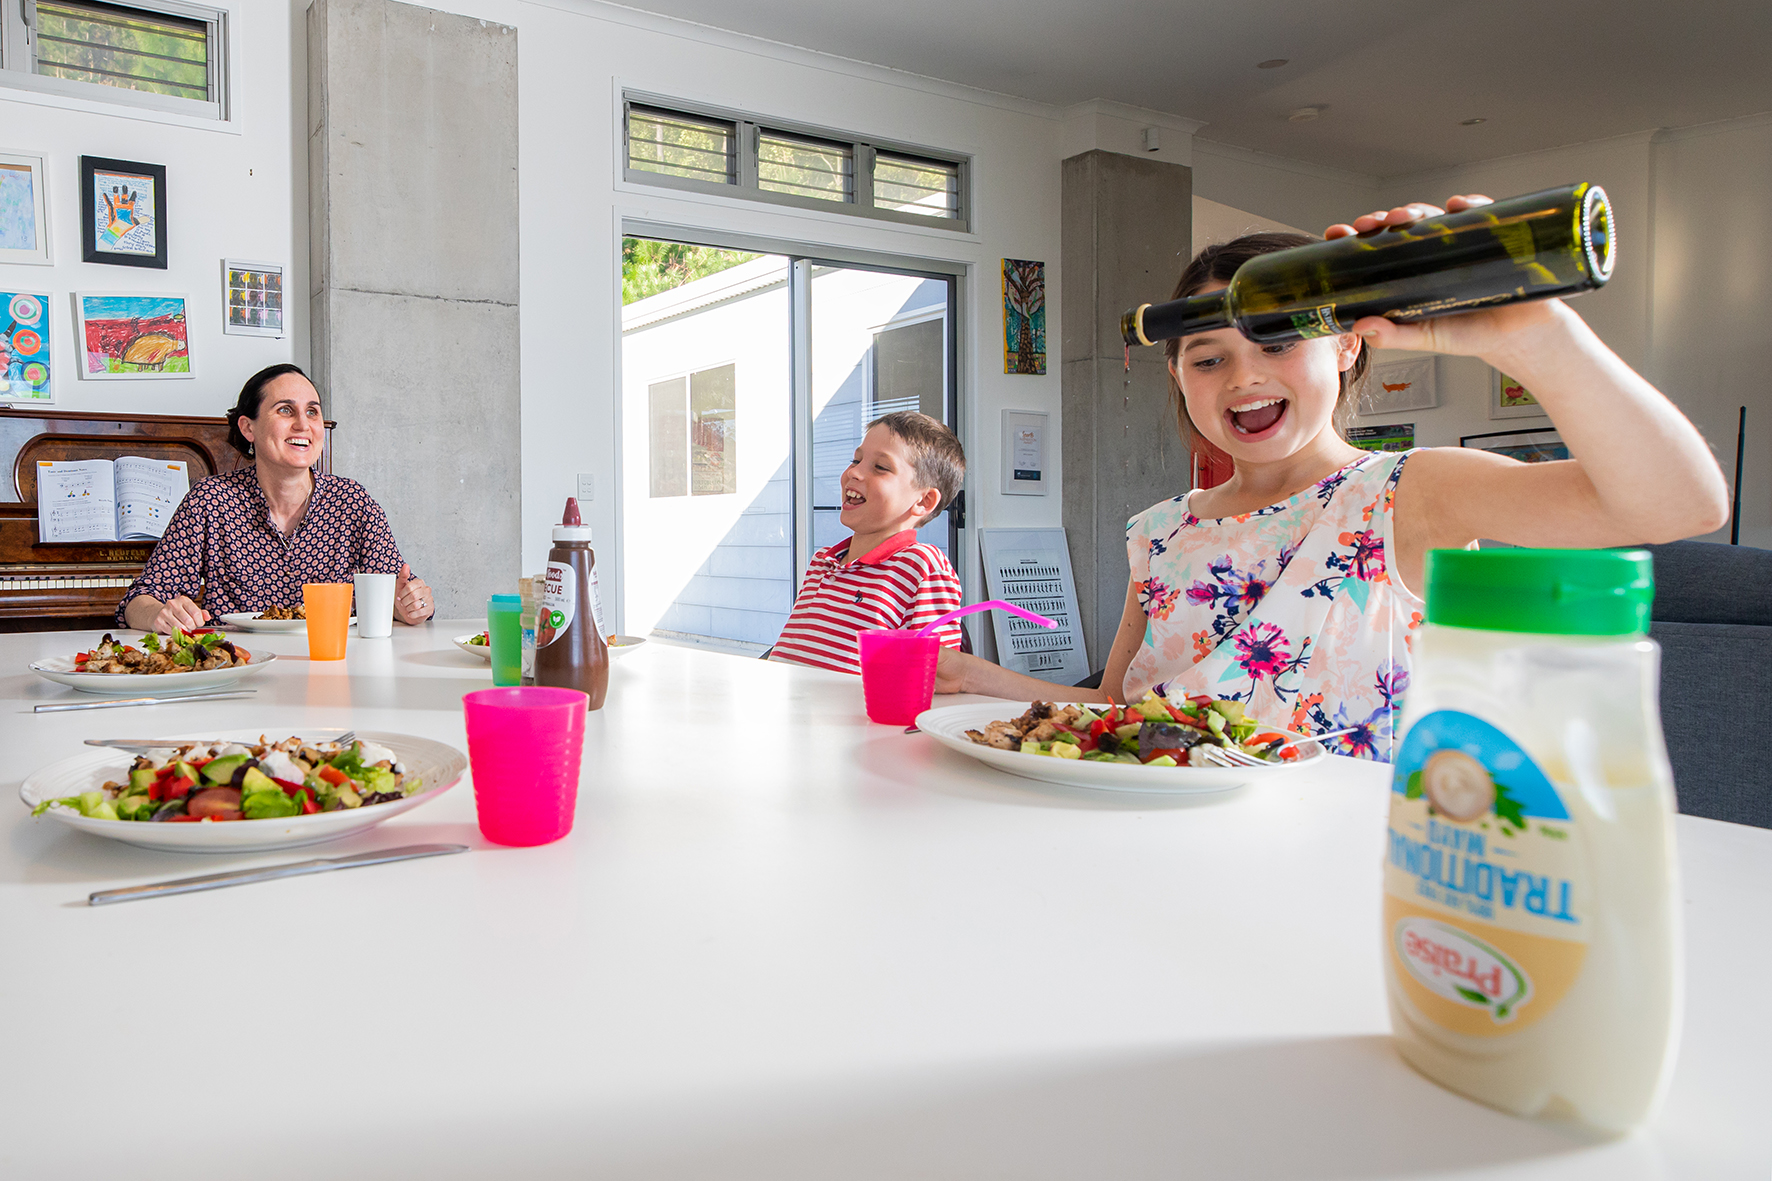 Picky eating research aims to help family mealtimes